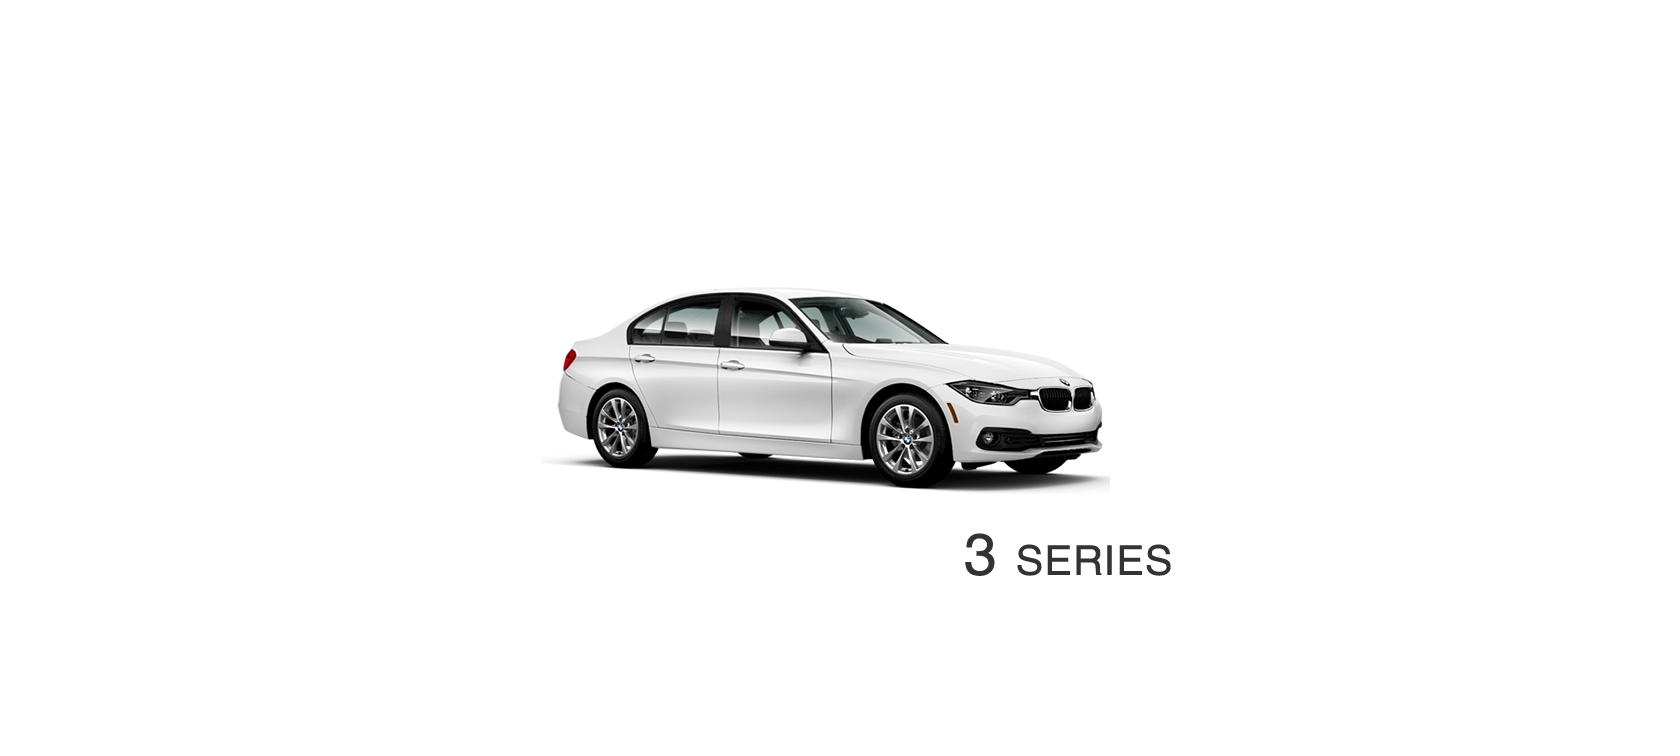 BMW 3 Series | Headlight lens plastic covers